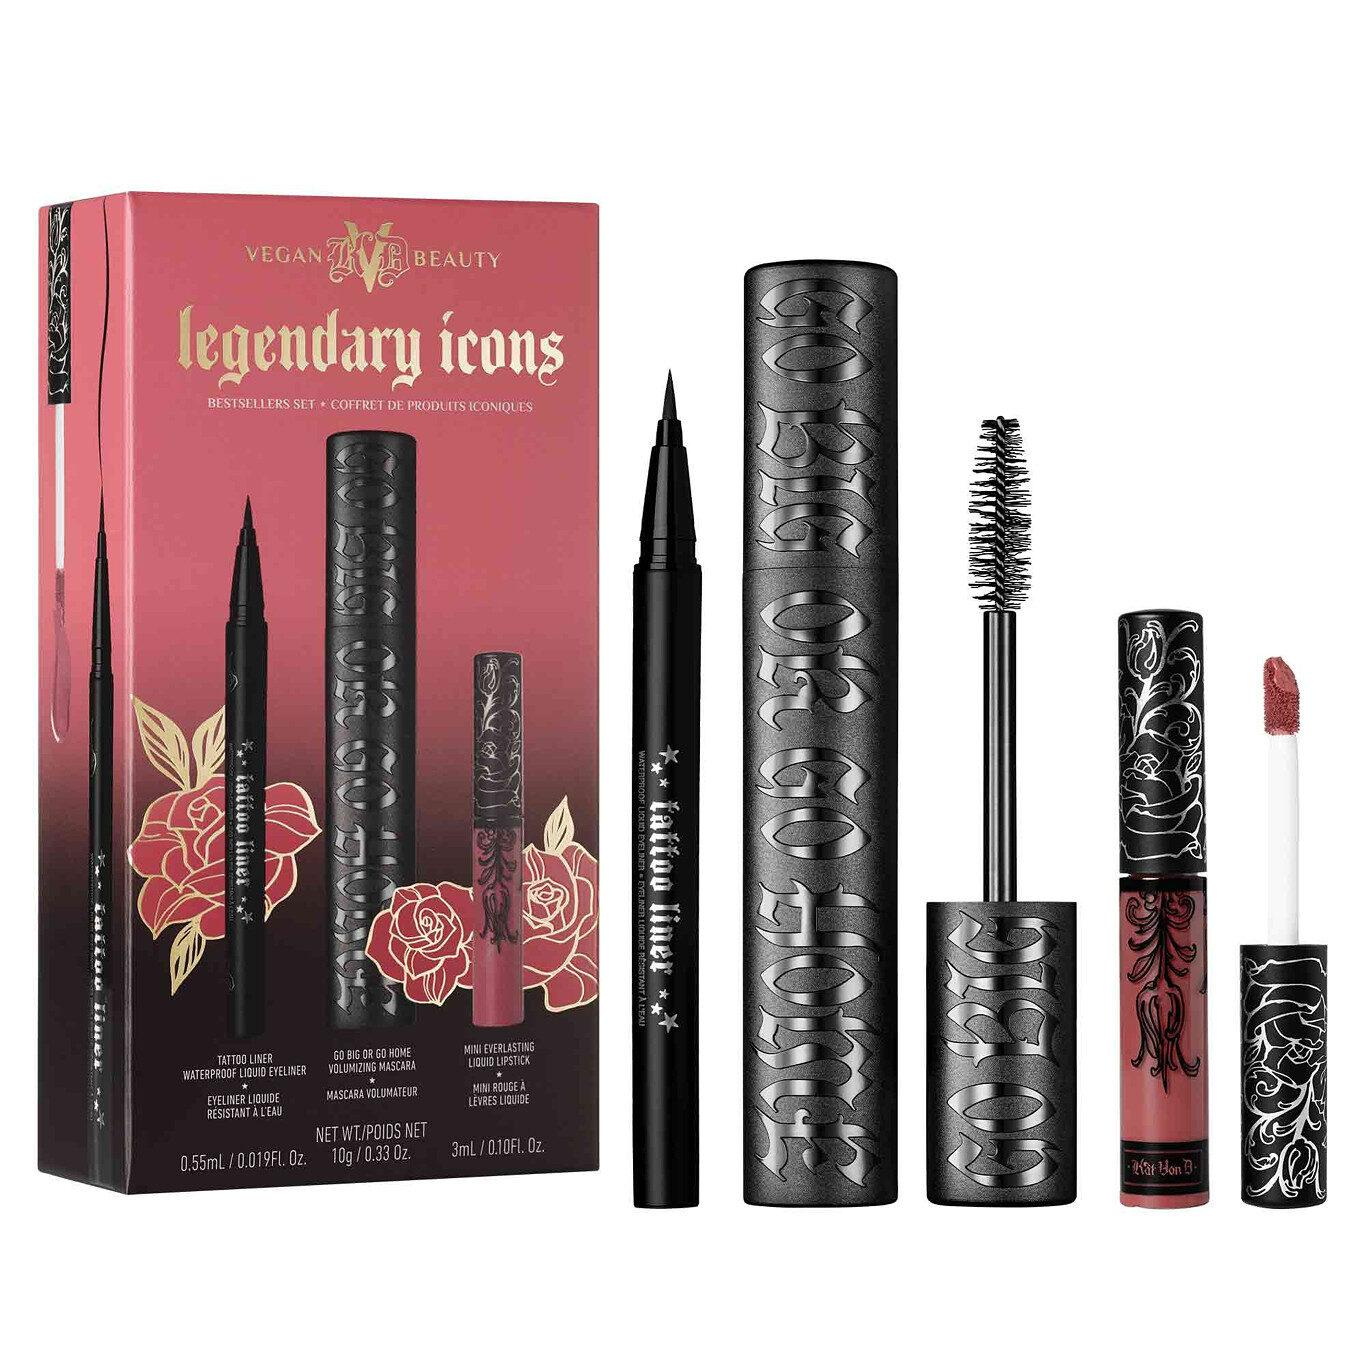 KVD Vegan Beauty Holiday Collection 2020 Legendary Icons Bestsellers Set